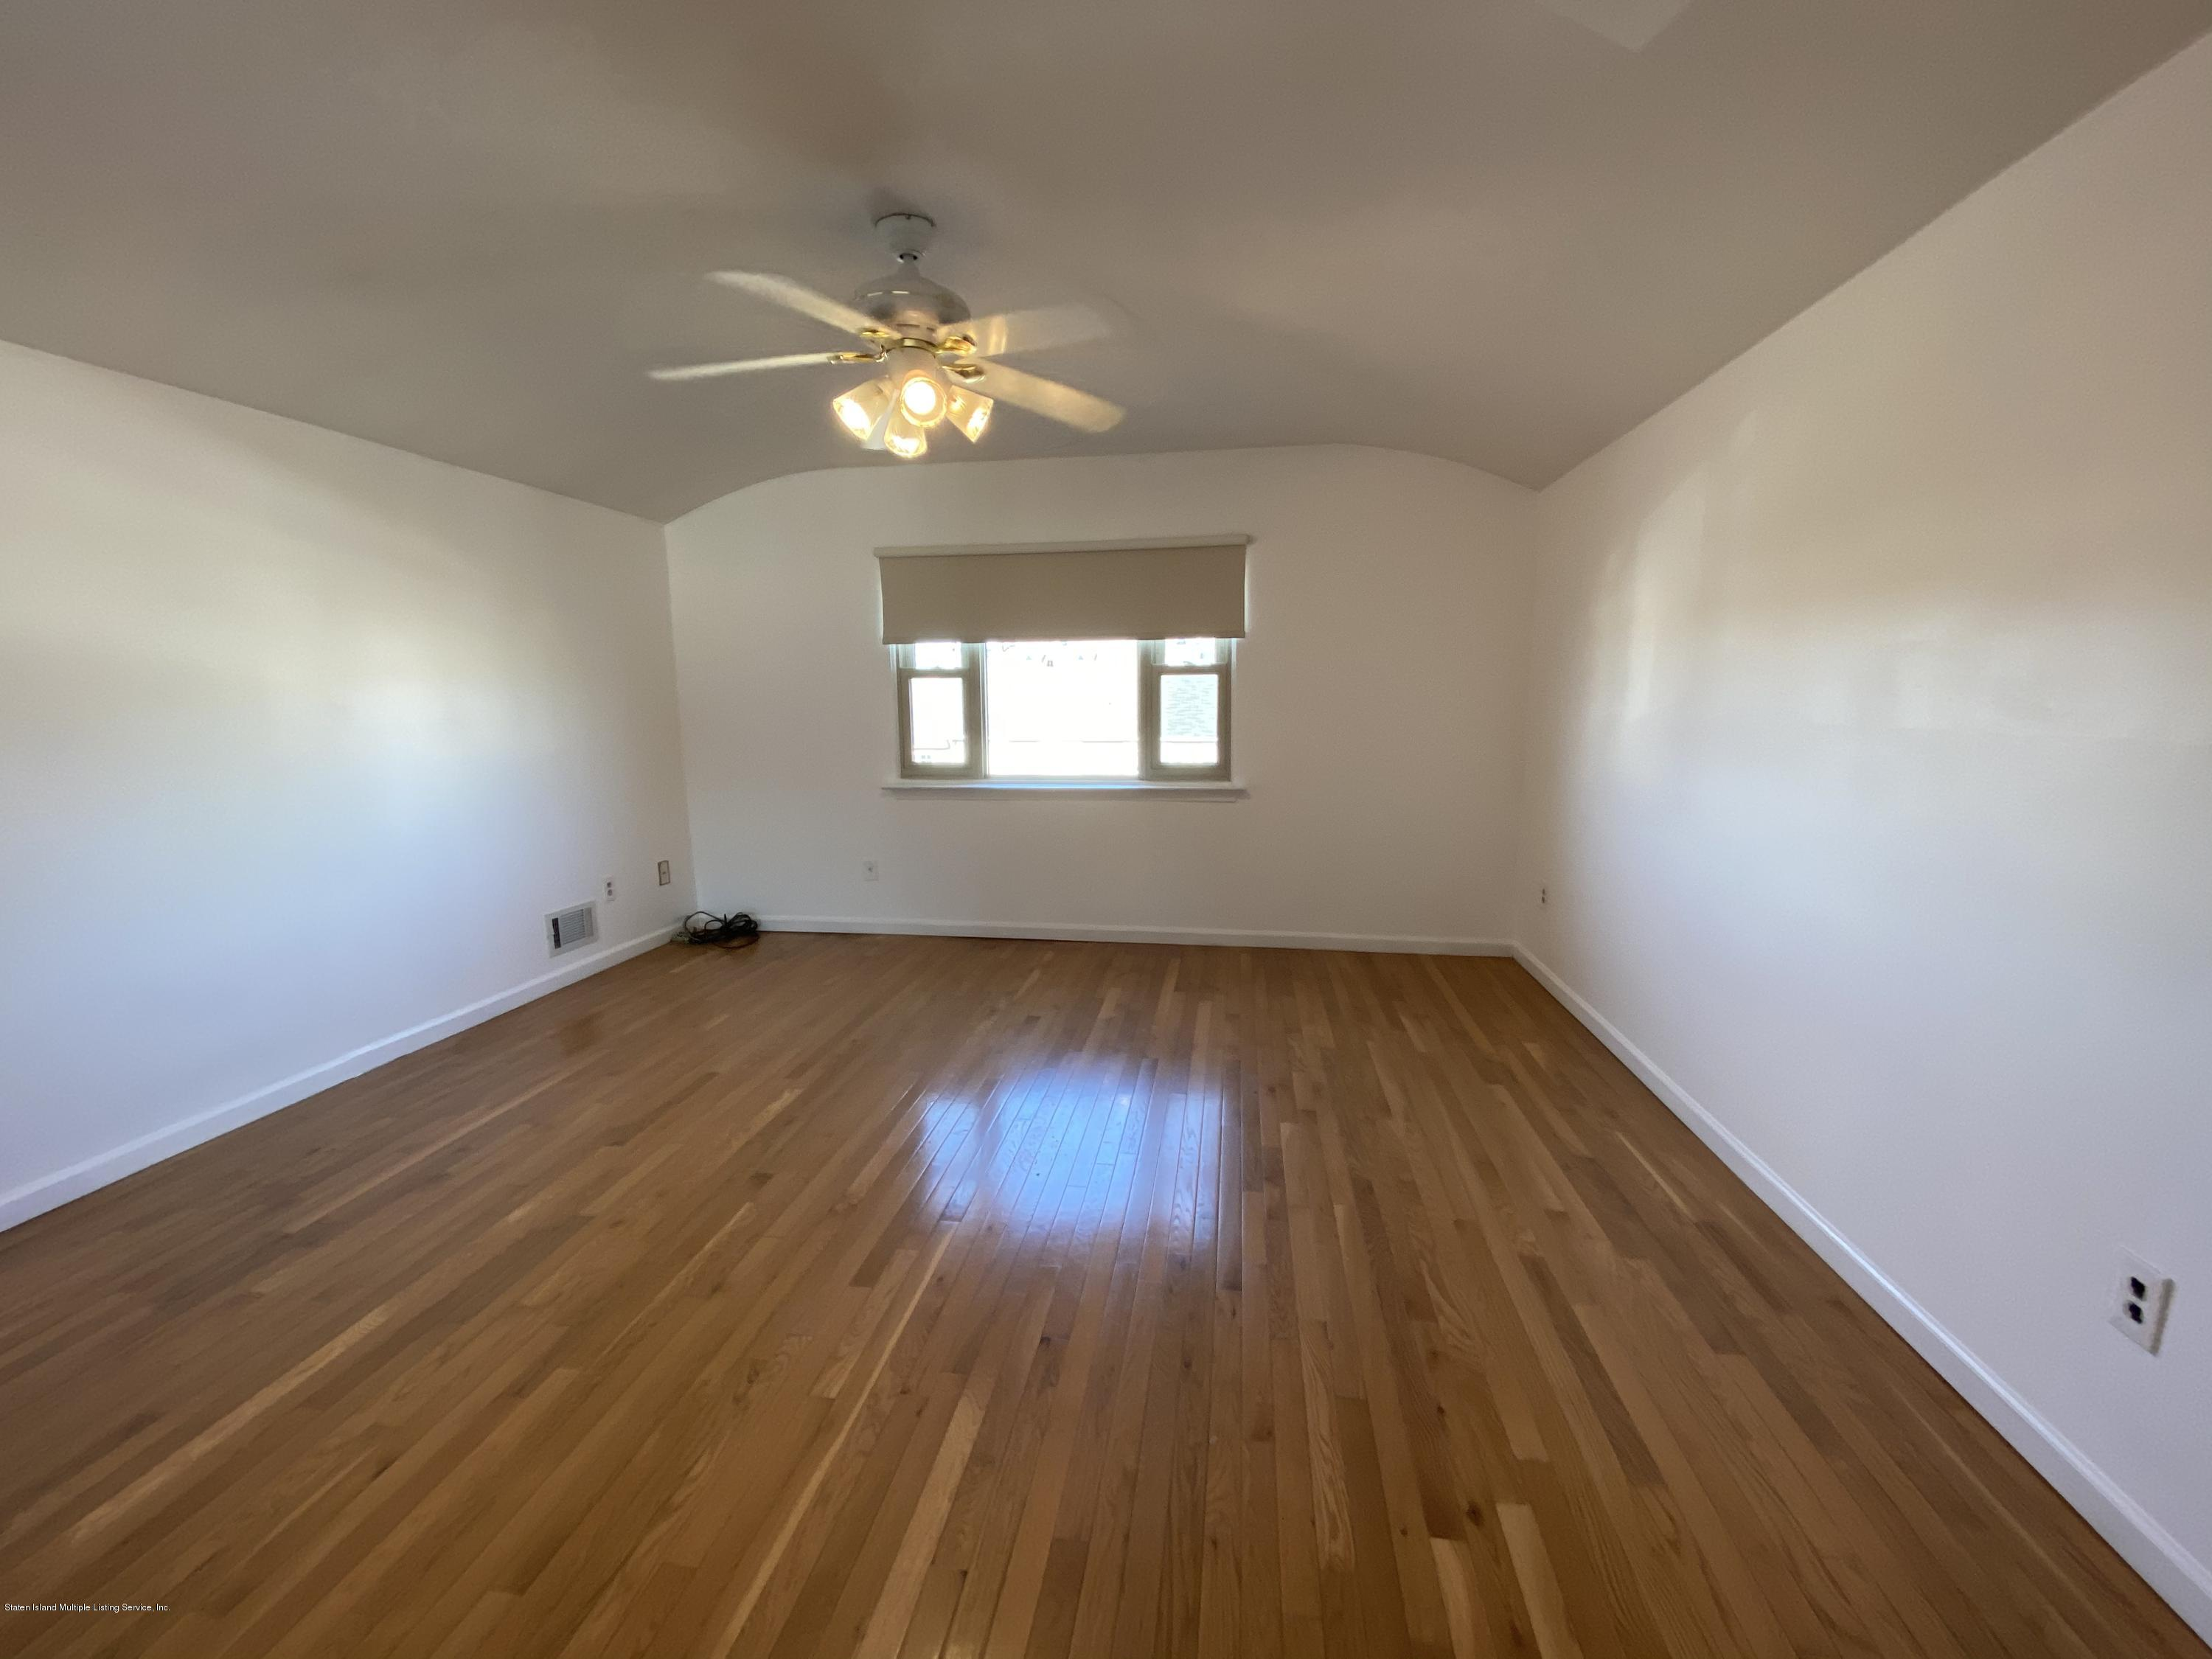 Single Family - Attached 118 Braisted Avenue  Staten Island, NY 10314, MLS-1135869-7